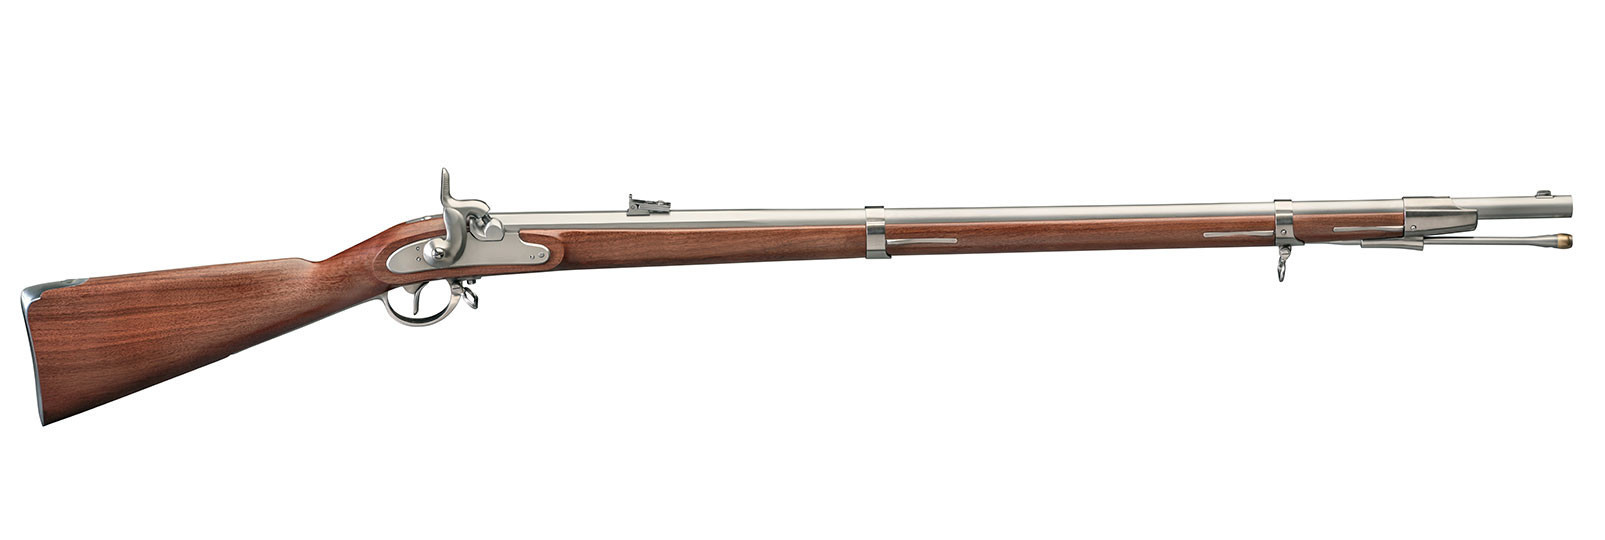 1854 Lorenz Infantry Rifle